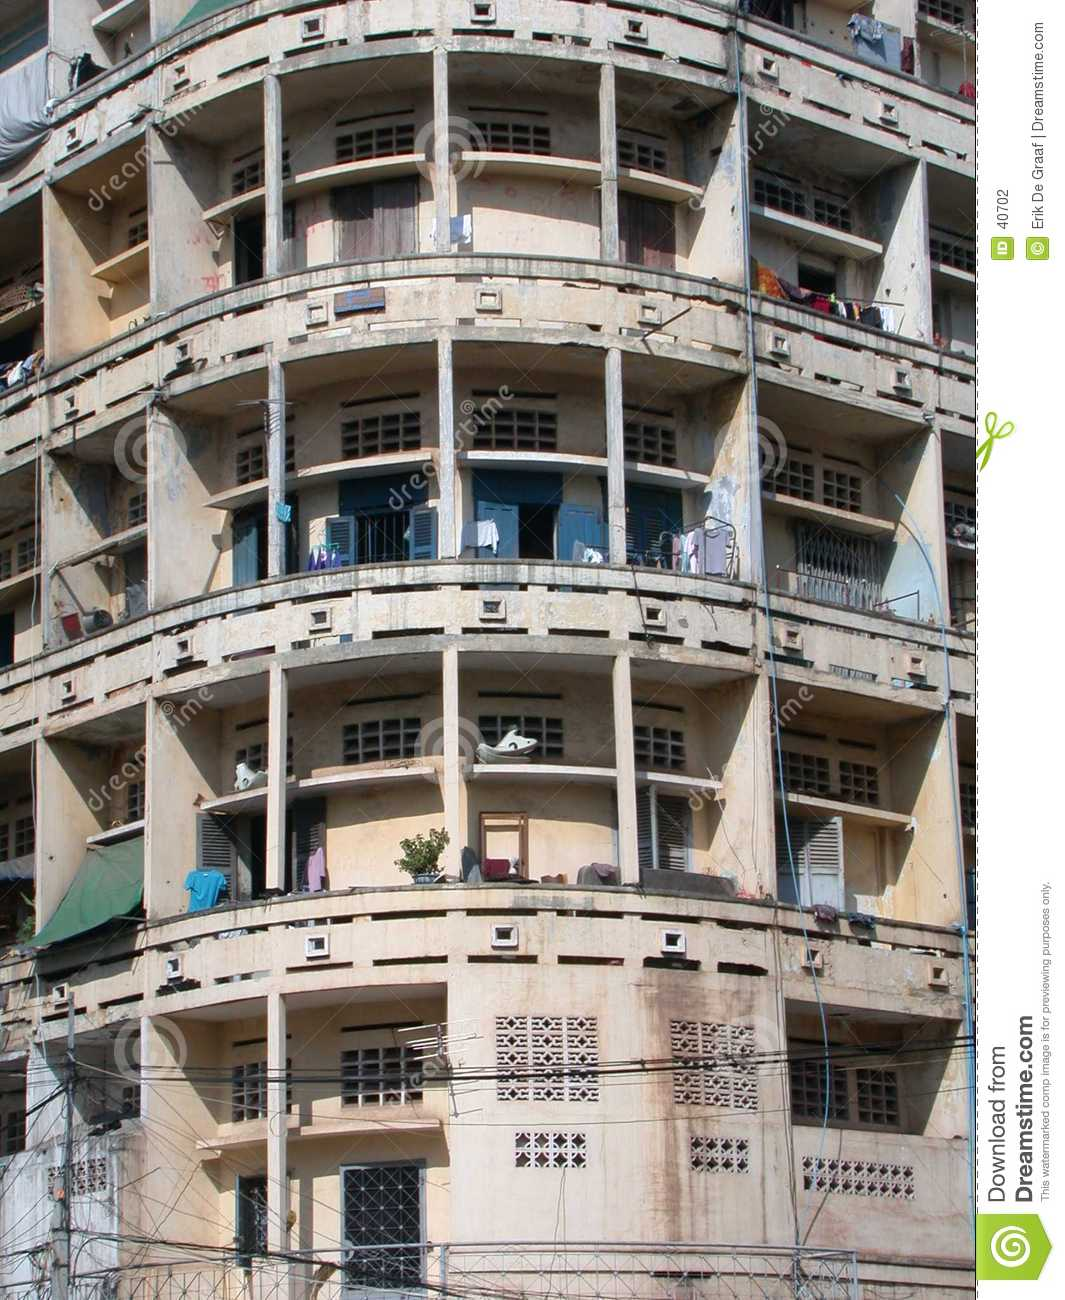 Appartments in Phnom Penh 1